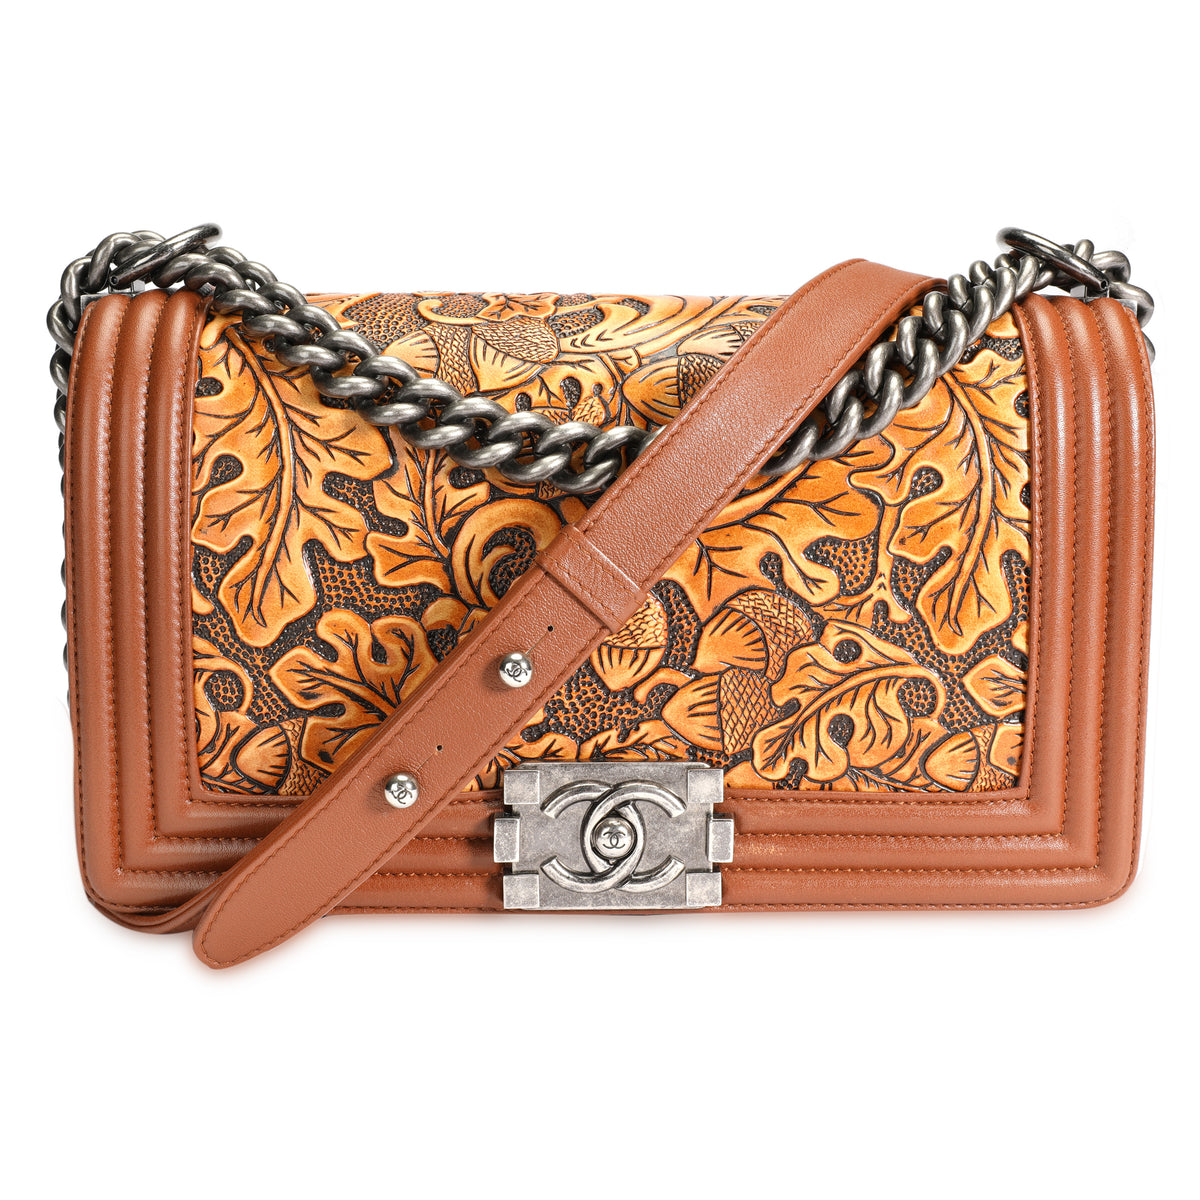 Chanel Brown Tooled Leather Cordoba Medium Boy Bag with Ruthenium Hardware